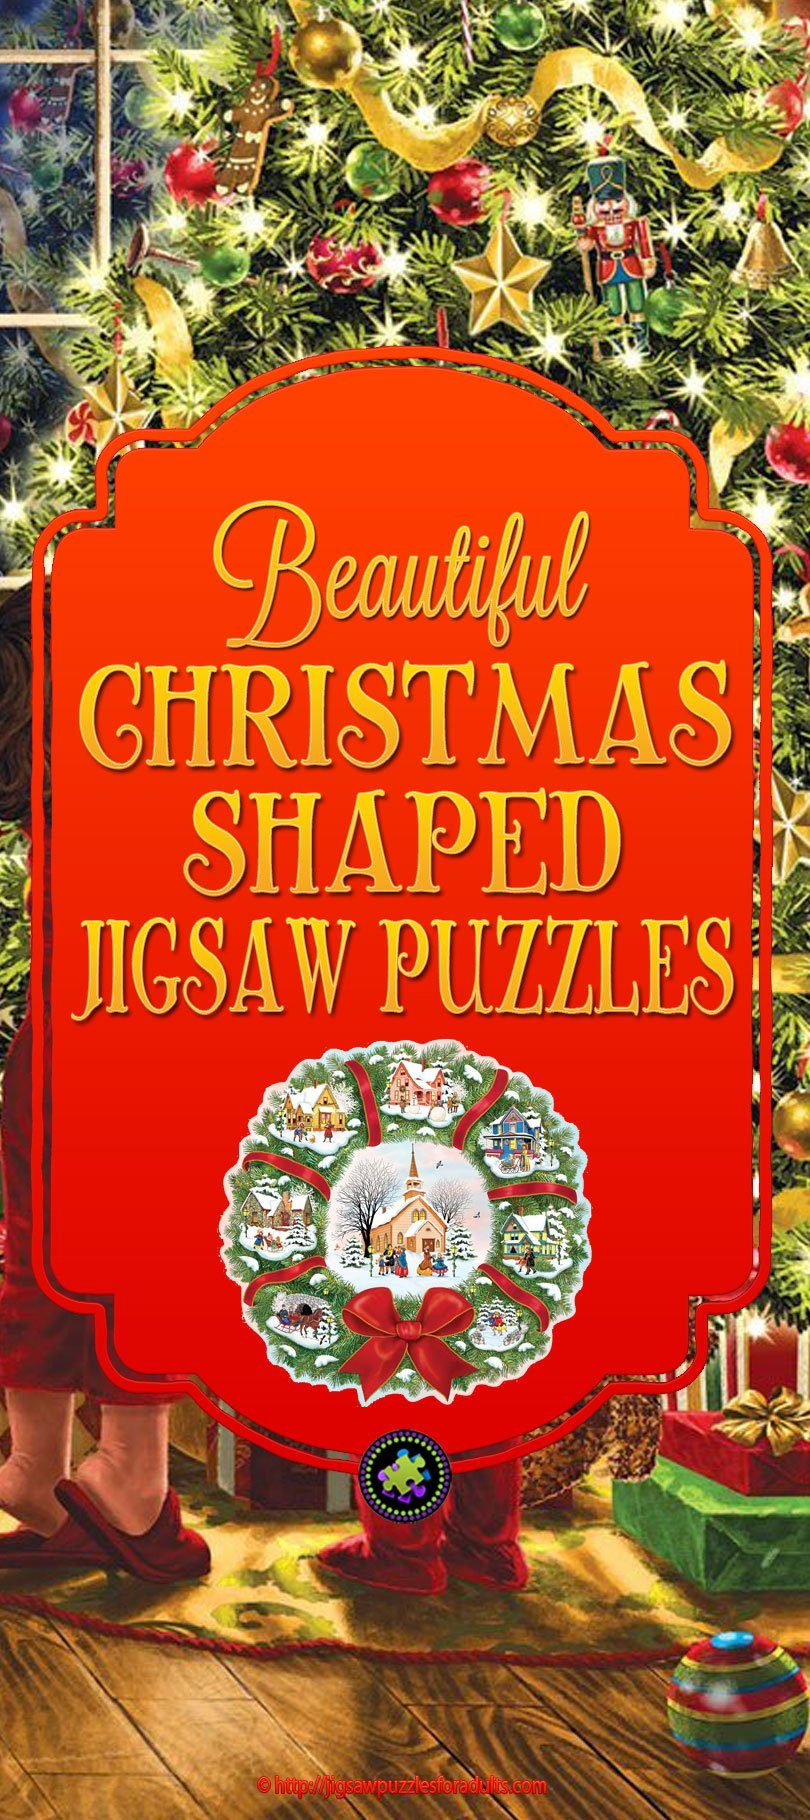 Christmas Shapped Jigsaw Puzzles